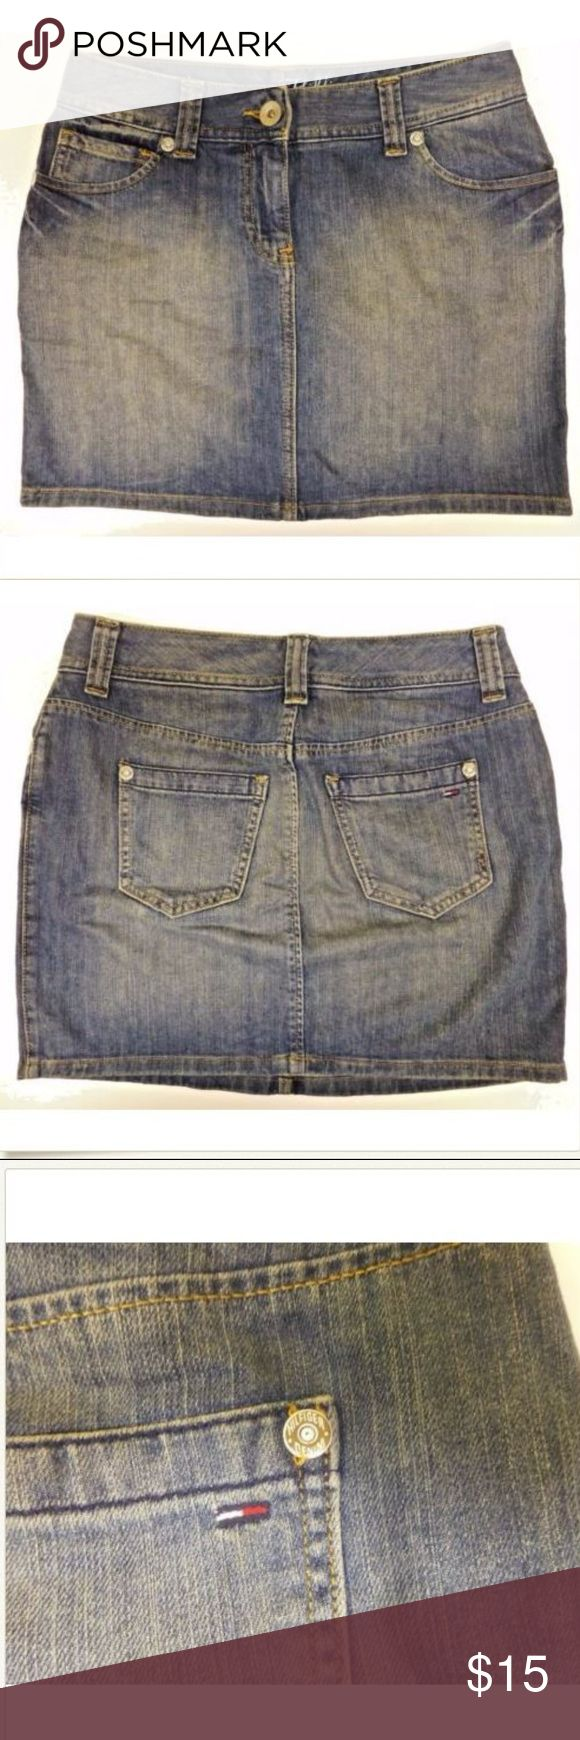 "Tommy Hilfiger 2 Denim Blue Jean Skirt - Front zip with button closure. - 5 pocket construction. - Factory fading. - 99% Cotton 1% Spandex. - Machine wash cold, inside out, tumble dry low.  15.5"" waistband laid flat. 16"" in length. Tommy Hilfiger Skirts Mini"